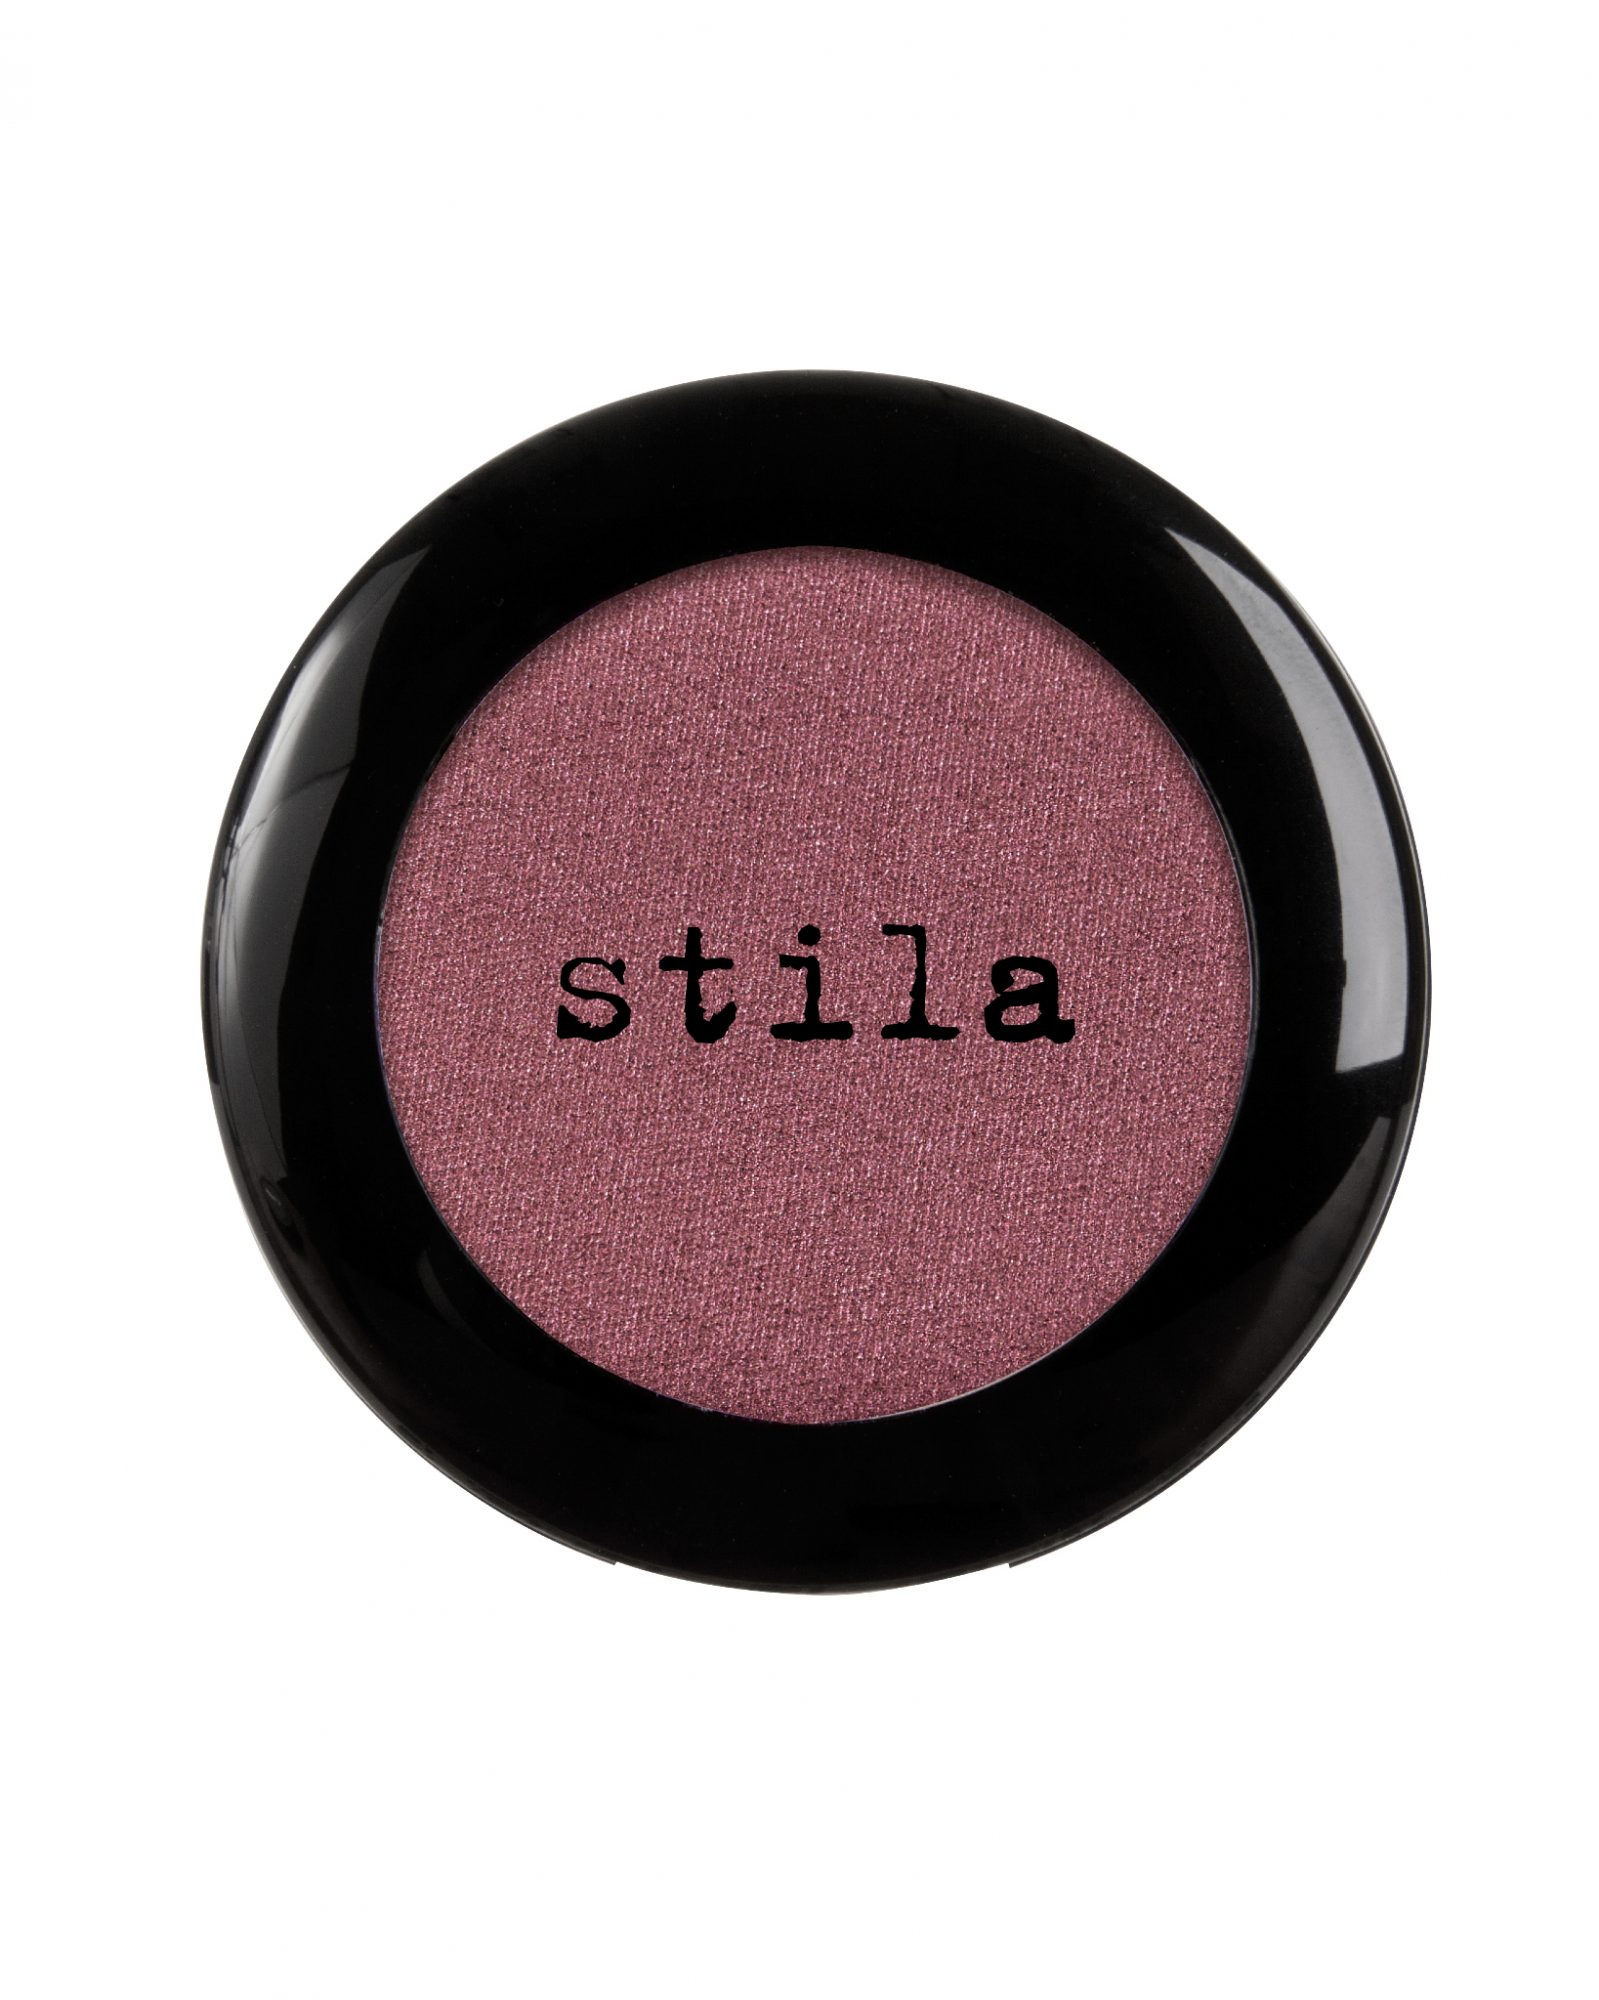 stila-eyeshadow-shadetwig-0814.jpg